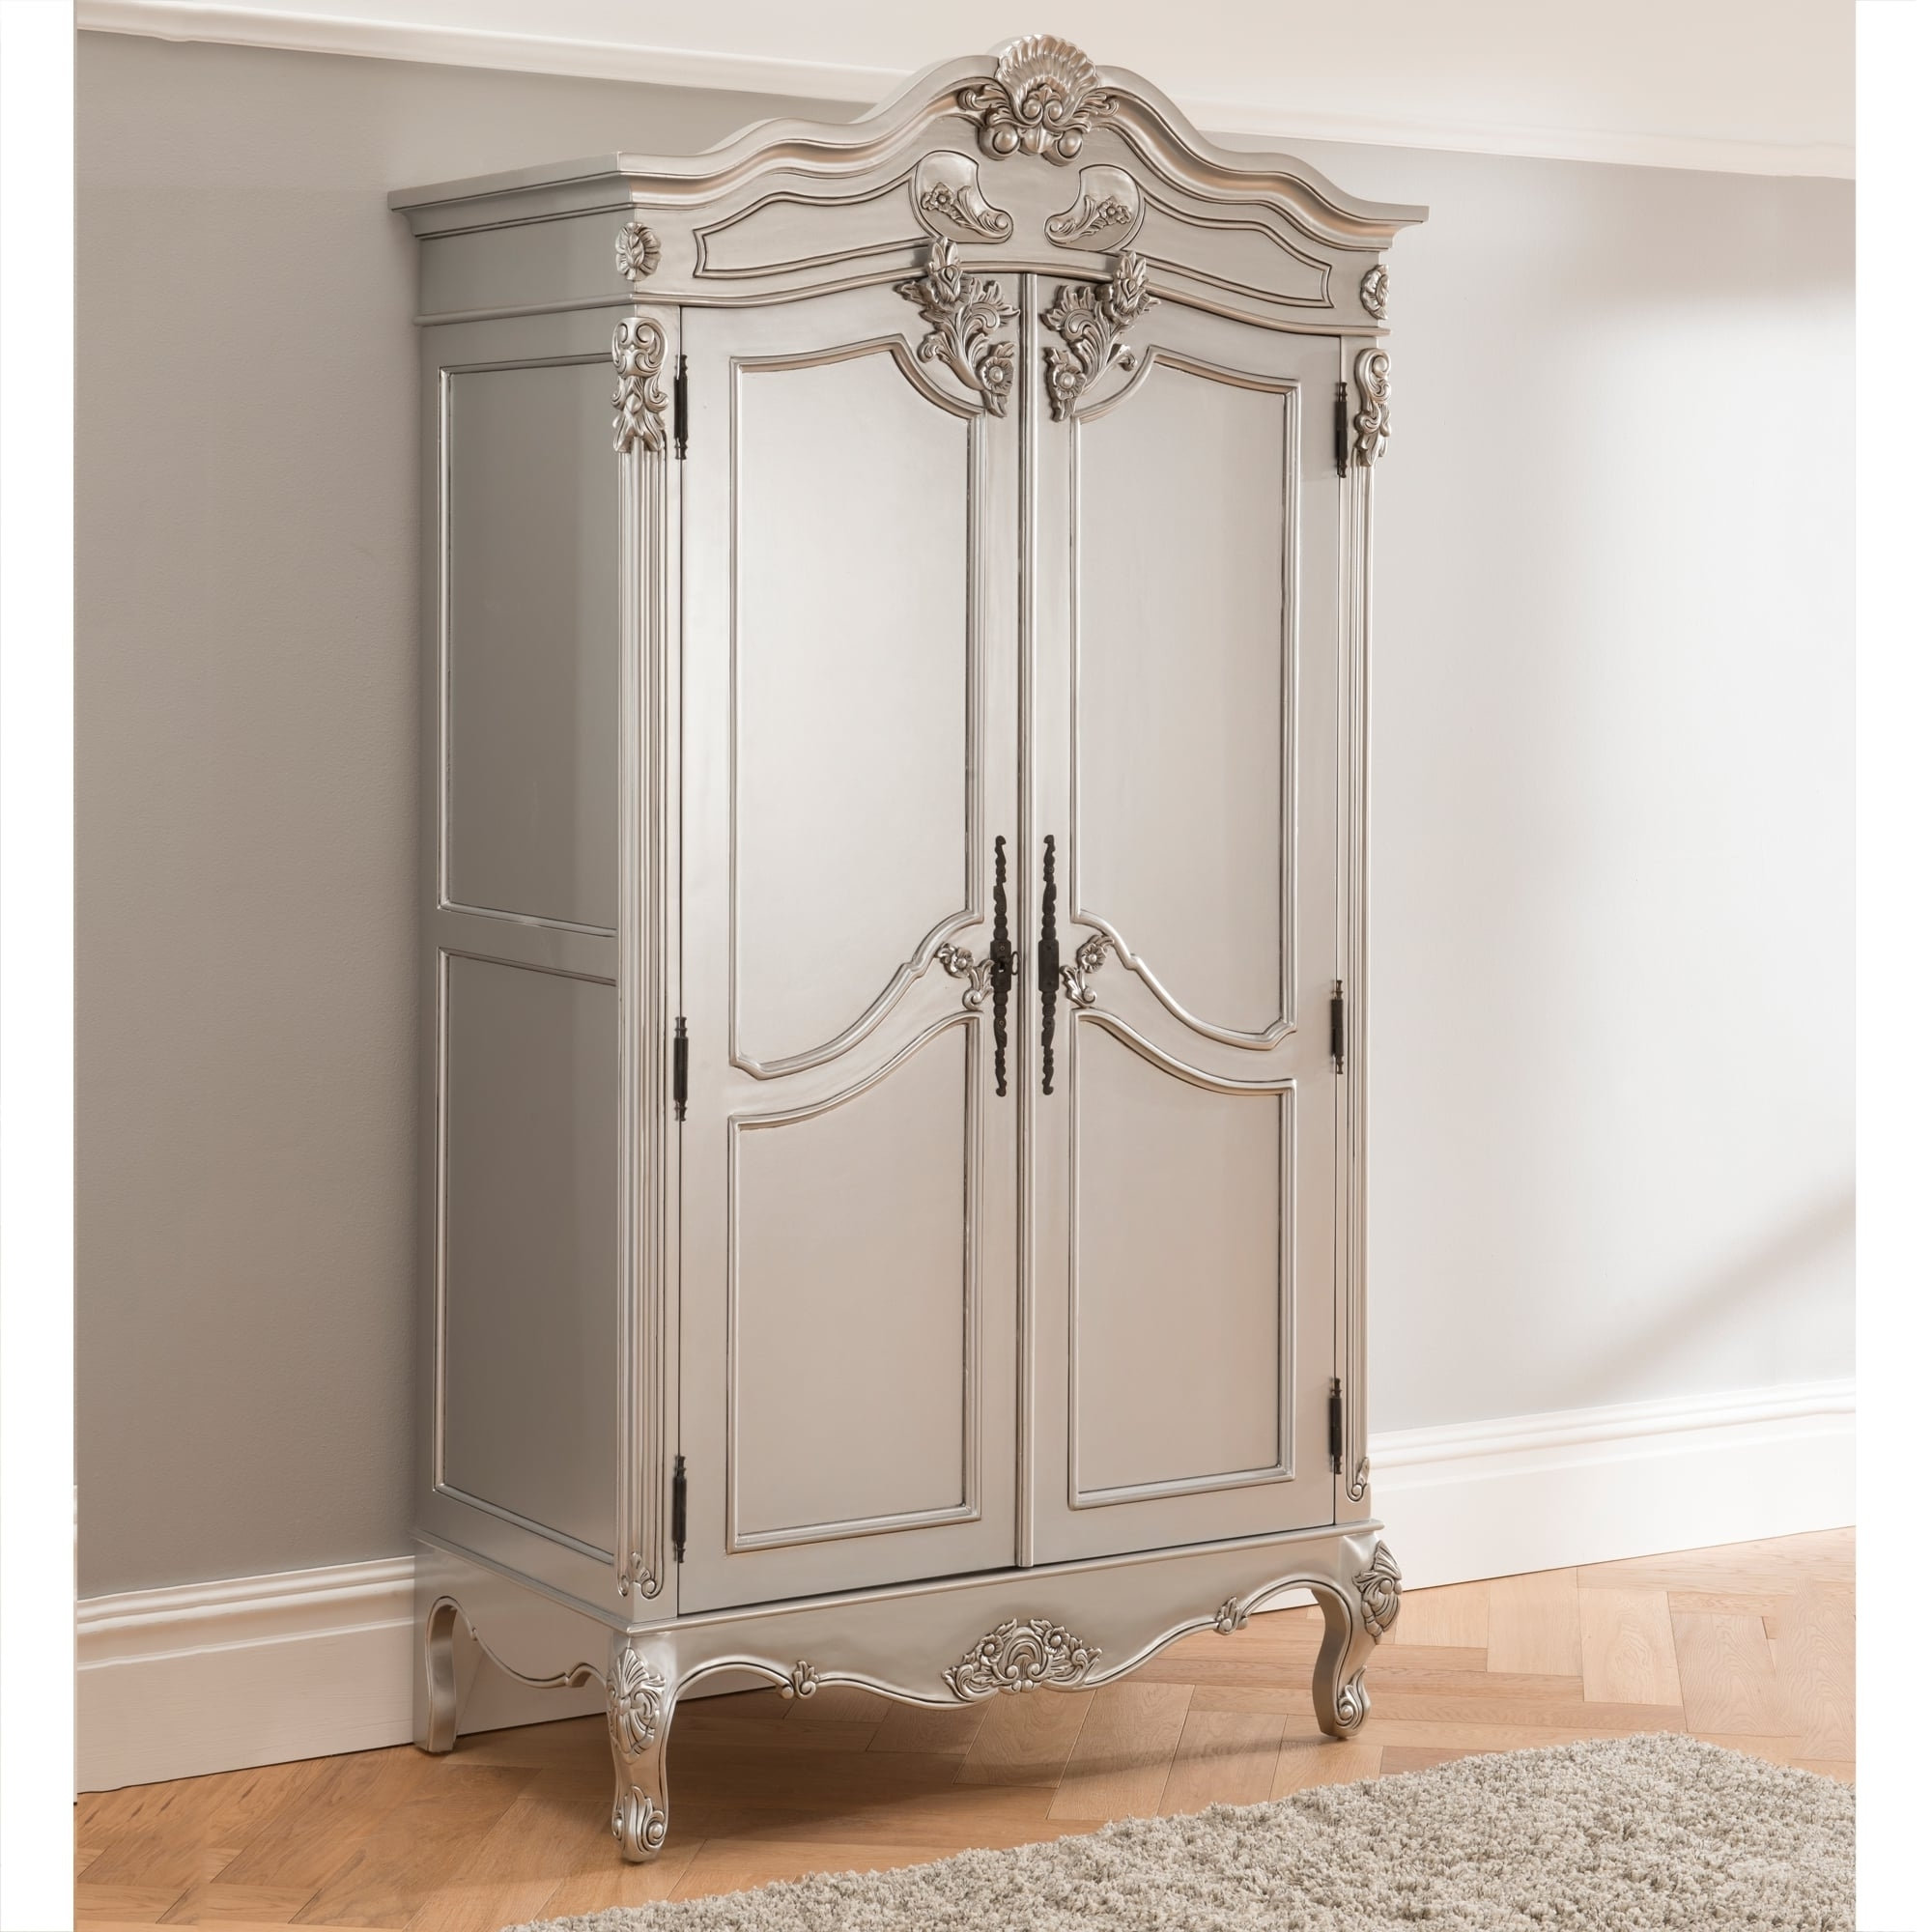 Baroque Antique French Wardrobe Works Exceptional Alongside Our Intended For Most Popular Antique Style Wardrobes (View 6 of 15)